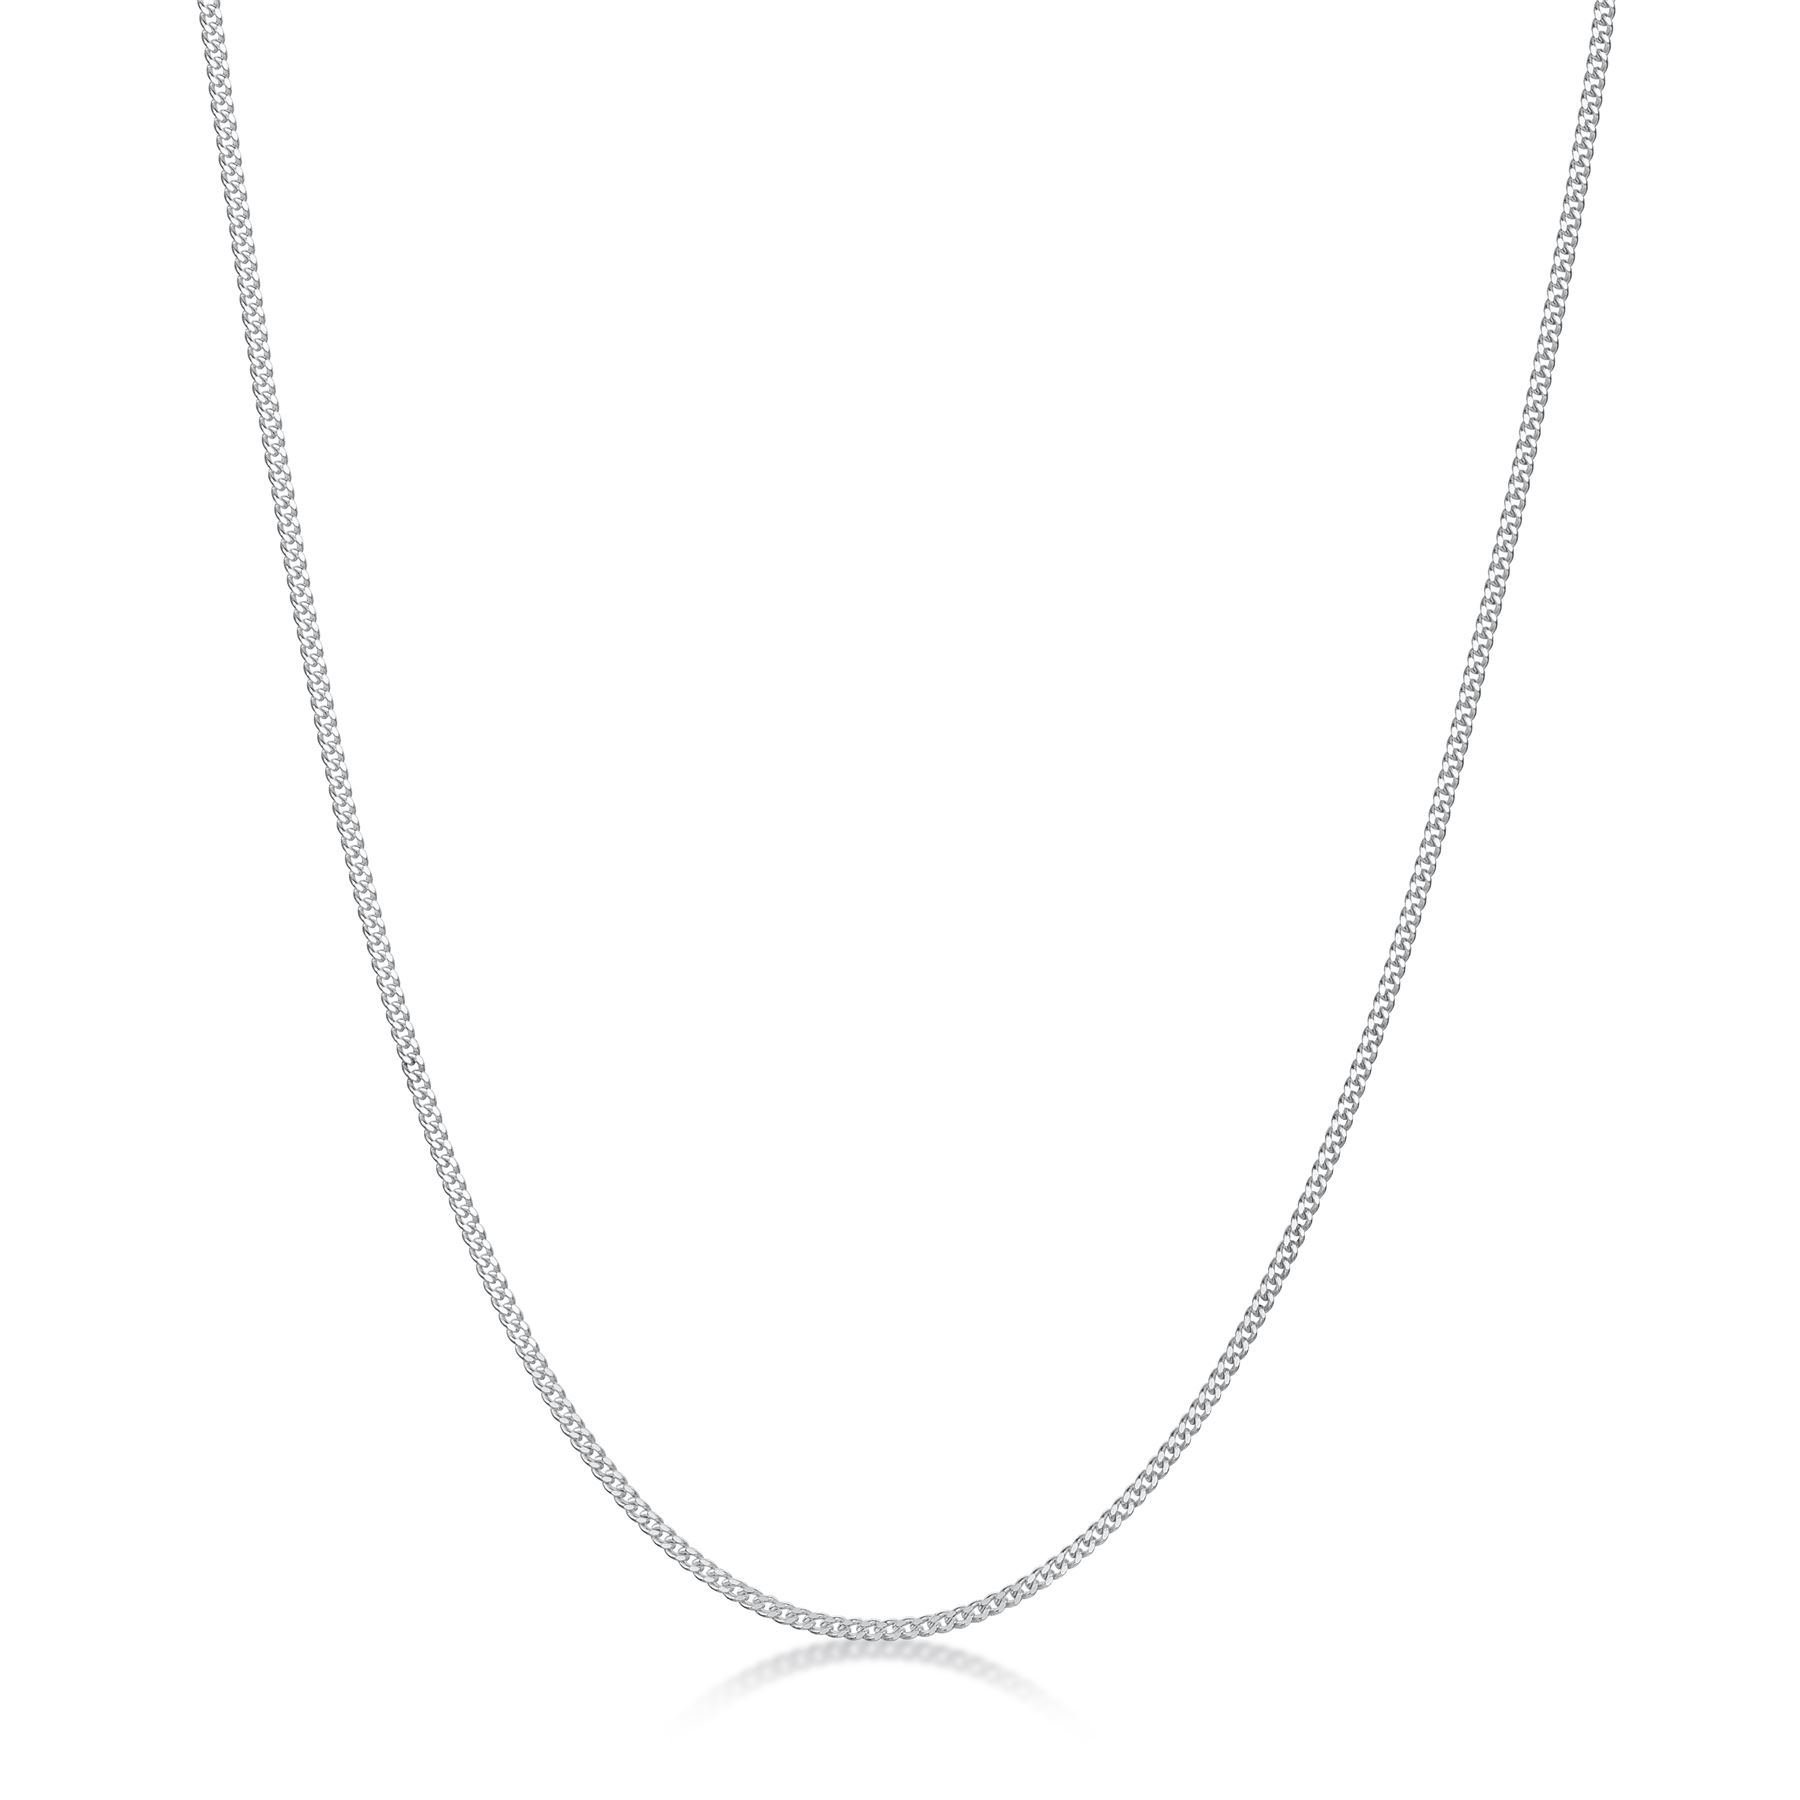 Amberta-Genuine-Real-925-Sterling-Silver-Long-Curb-Necklace-Chain-Made-in-Italy thumbnail 3